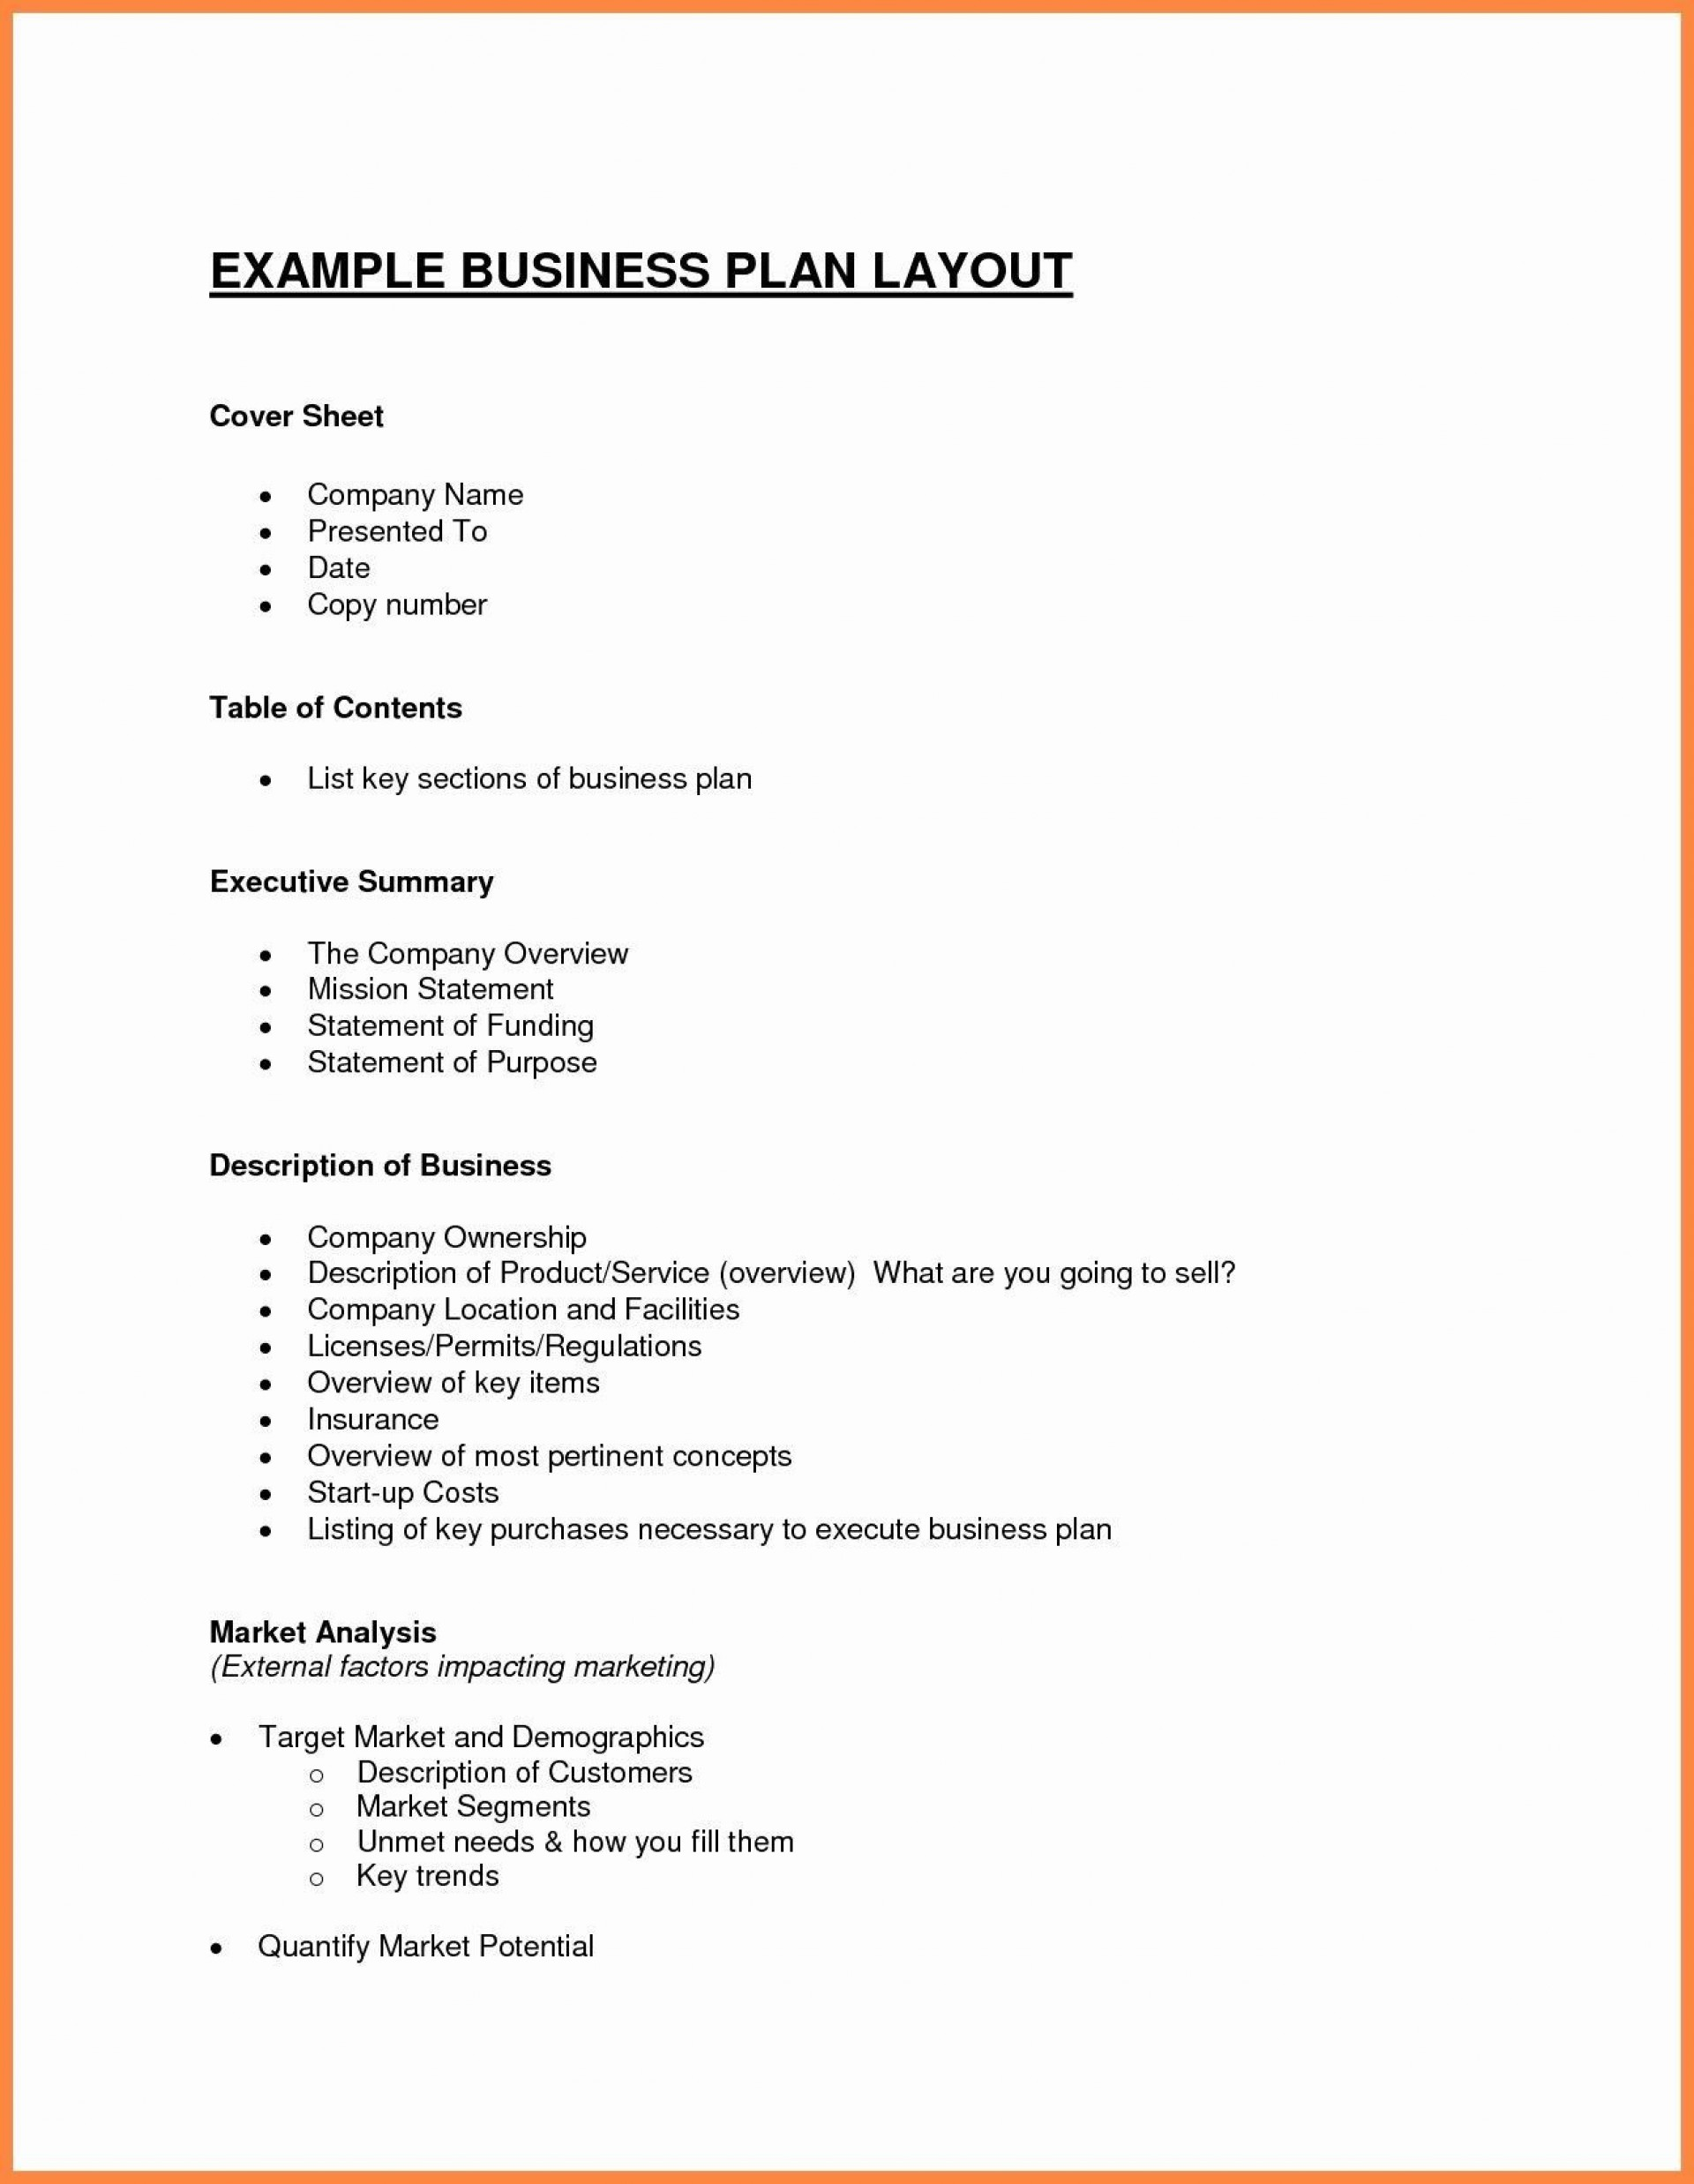 000 Magnificent Word Busines Plan Template Free High Resolution  Restaurant Doc Download Sale1920